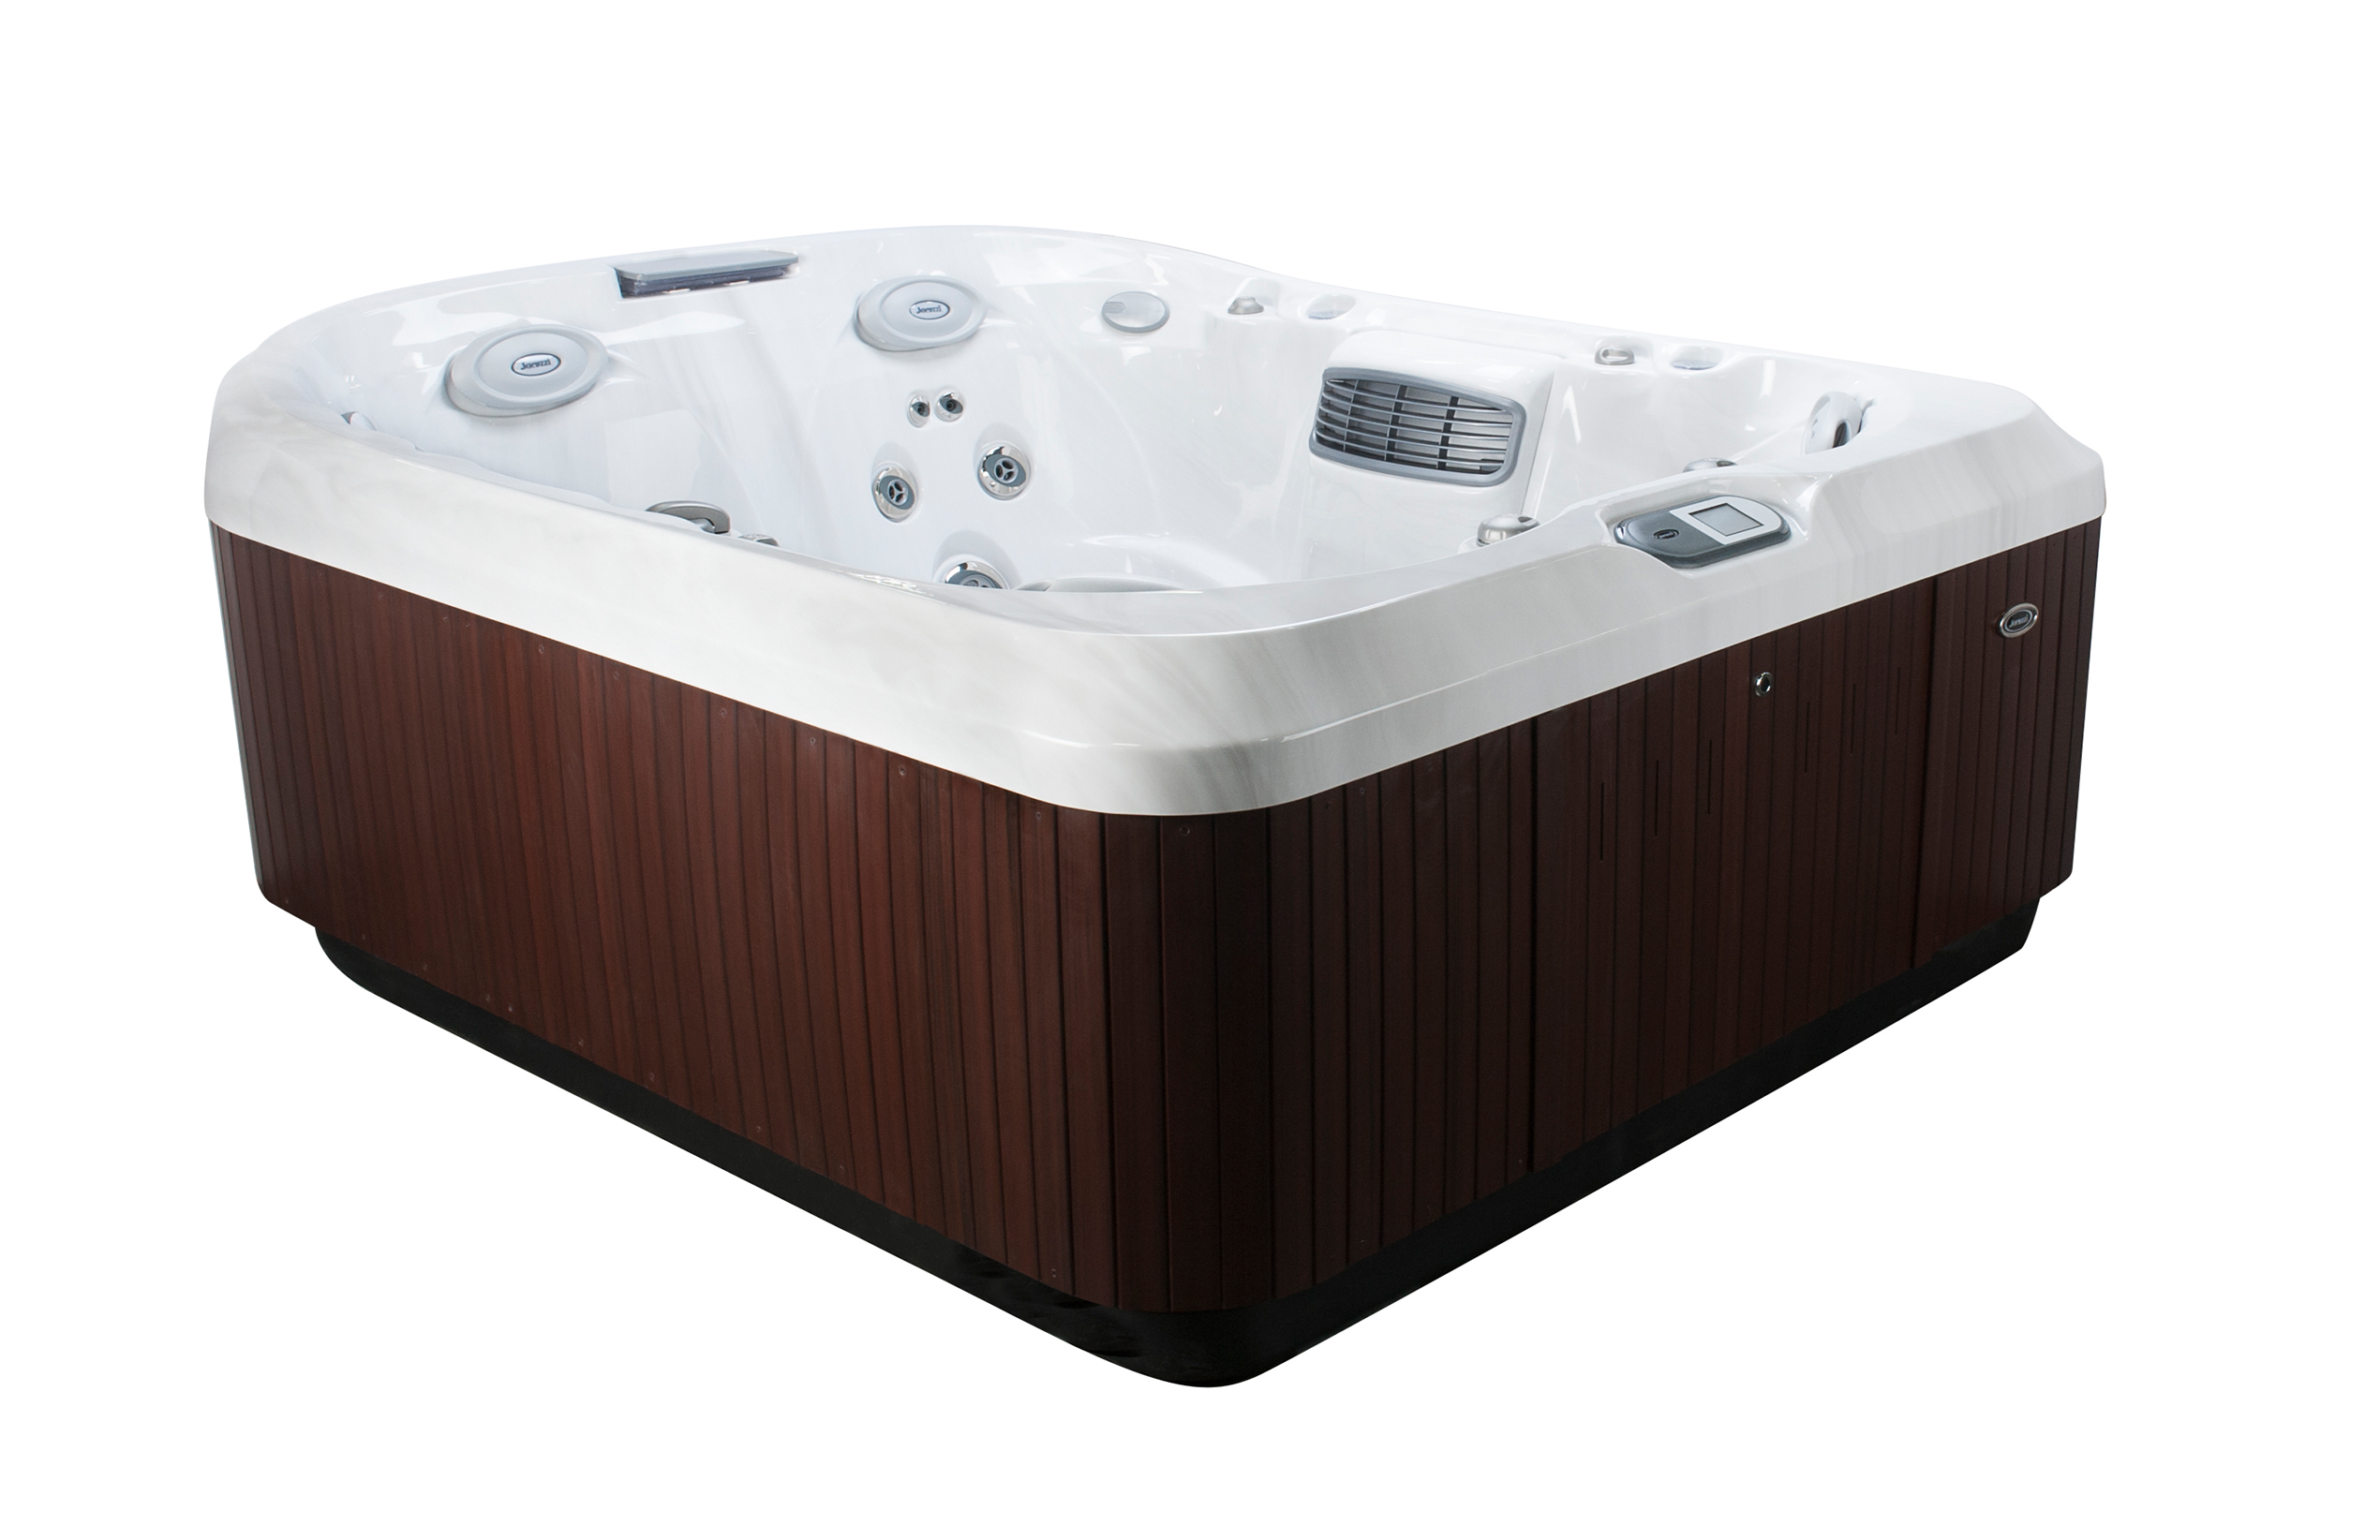 Jacuzzi Brand Pool Pump Jacuzzi J 425 5 Person Hot Tub Ultra Modern Pool And Patio